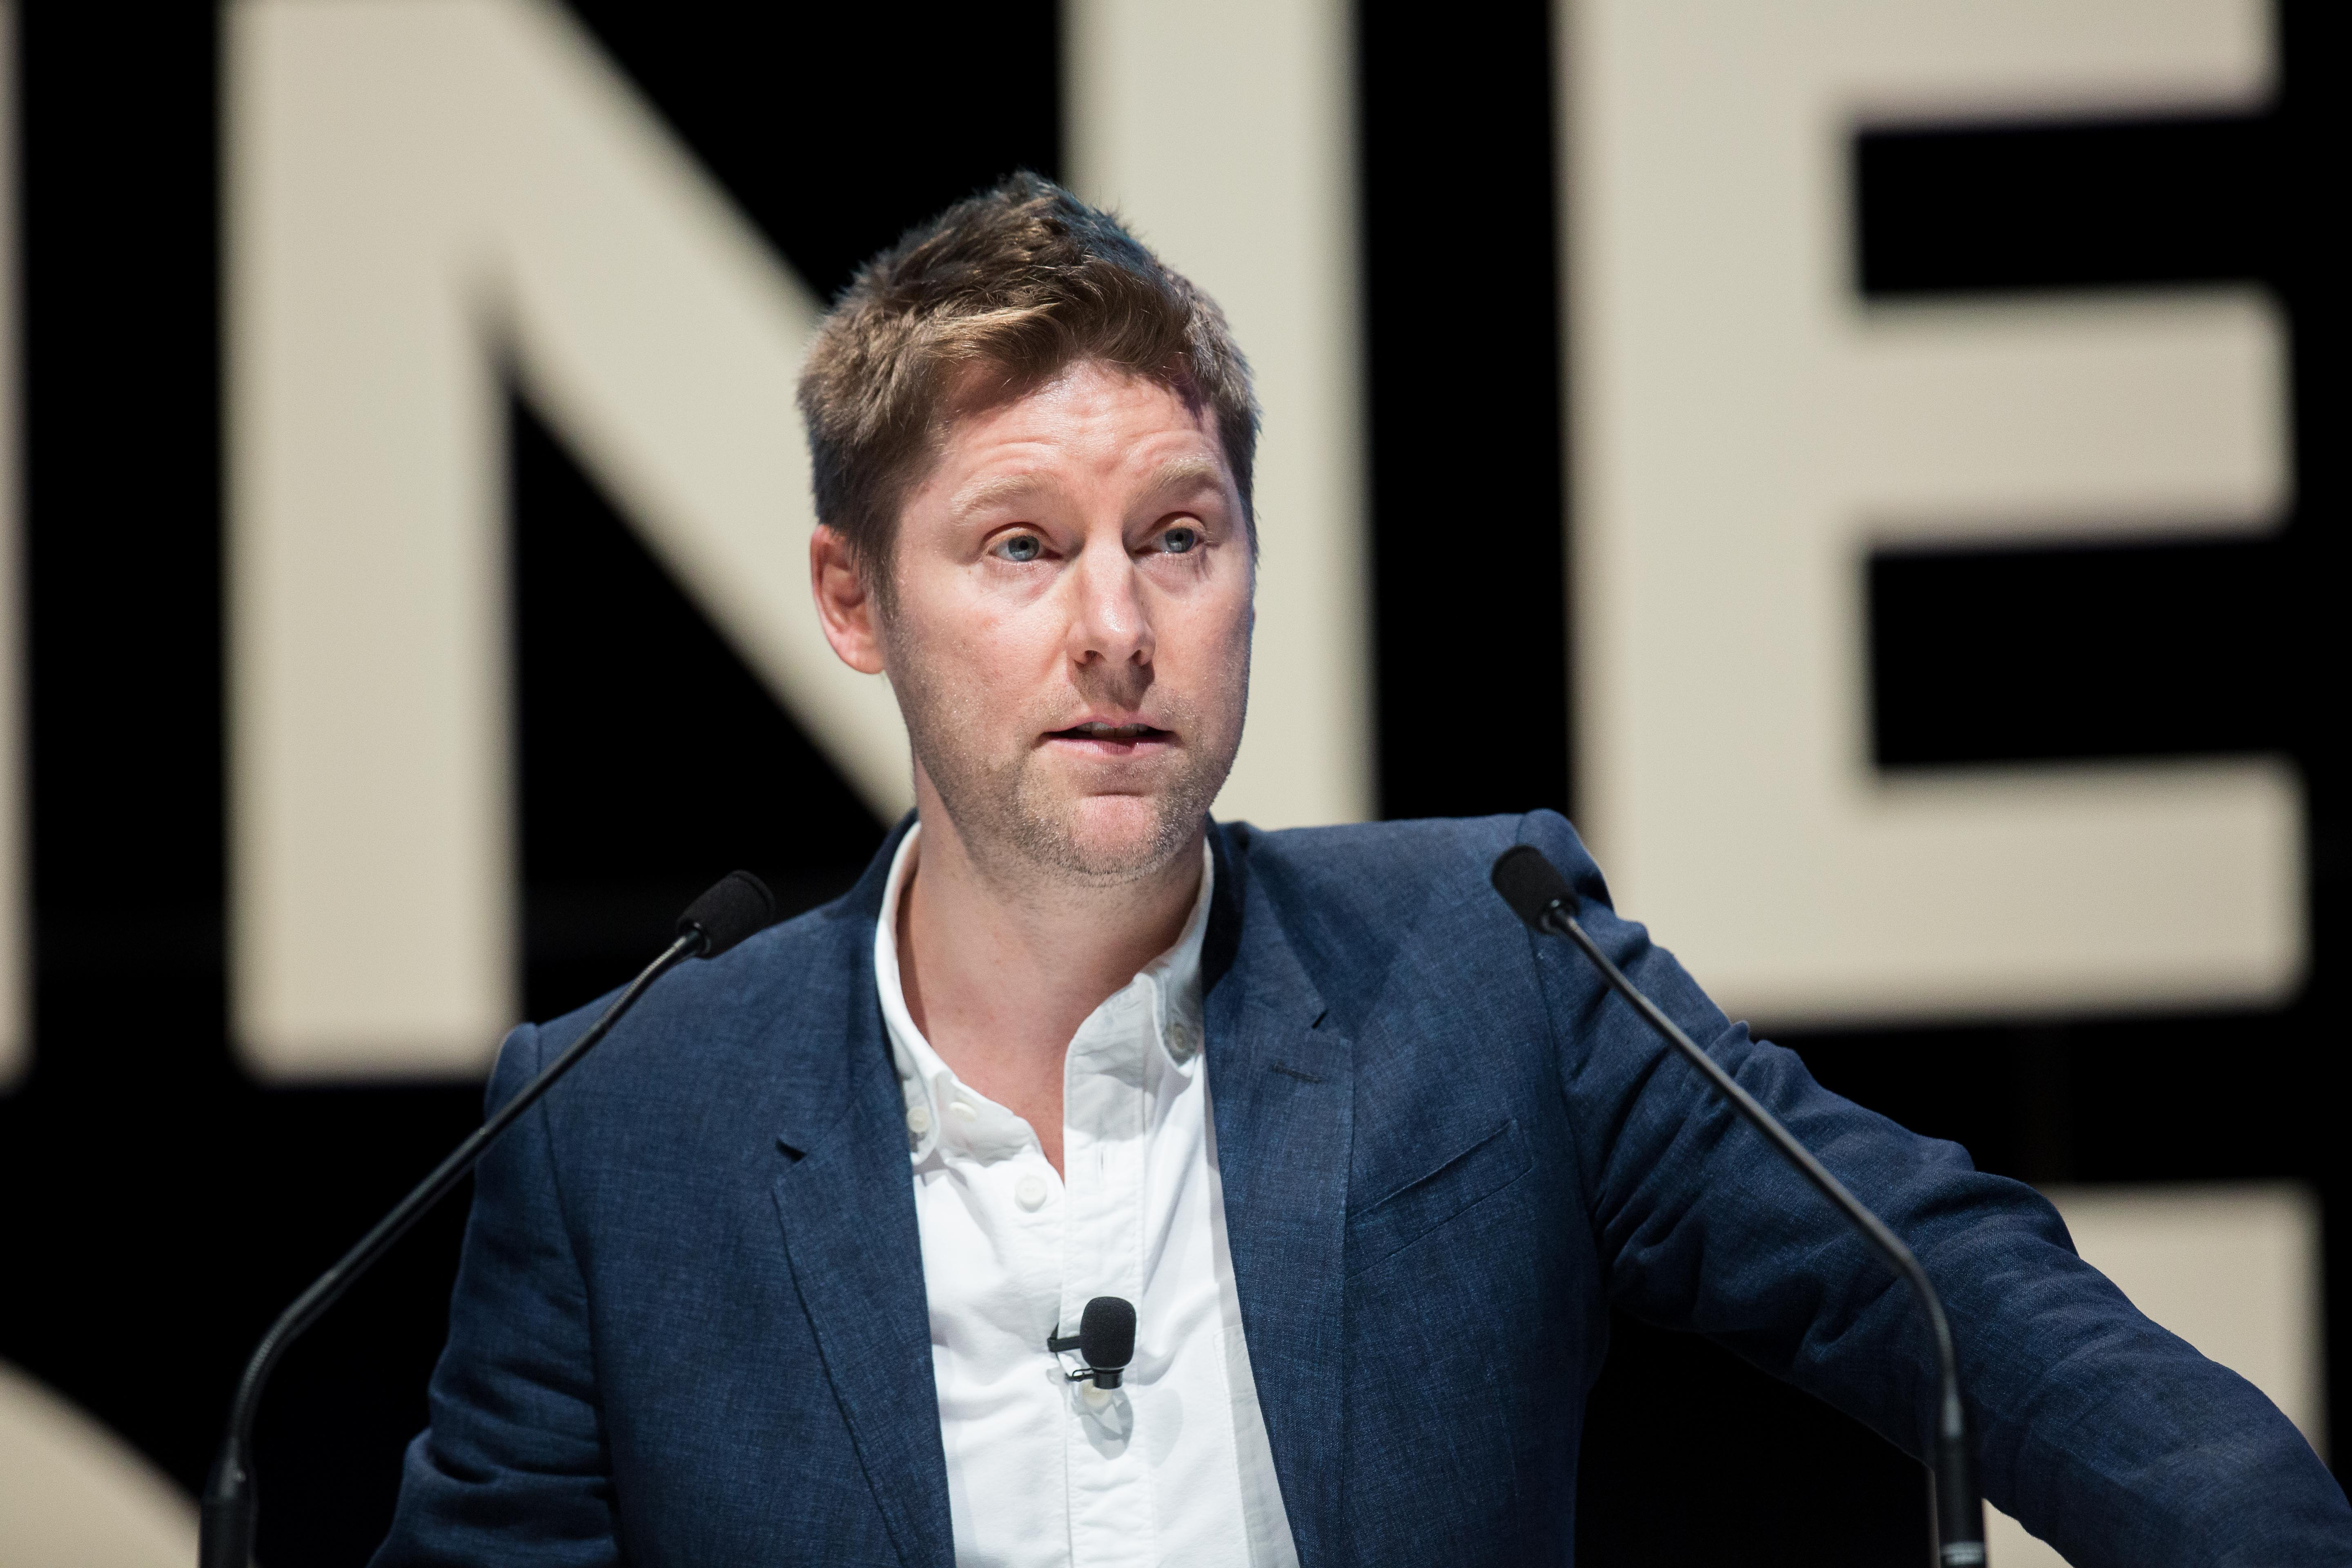 Burberry Group Plc Chief Executive Officer Christopher Bailey Speaks At Cannes Lions Festival Of Creativity